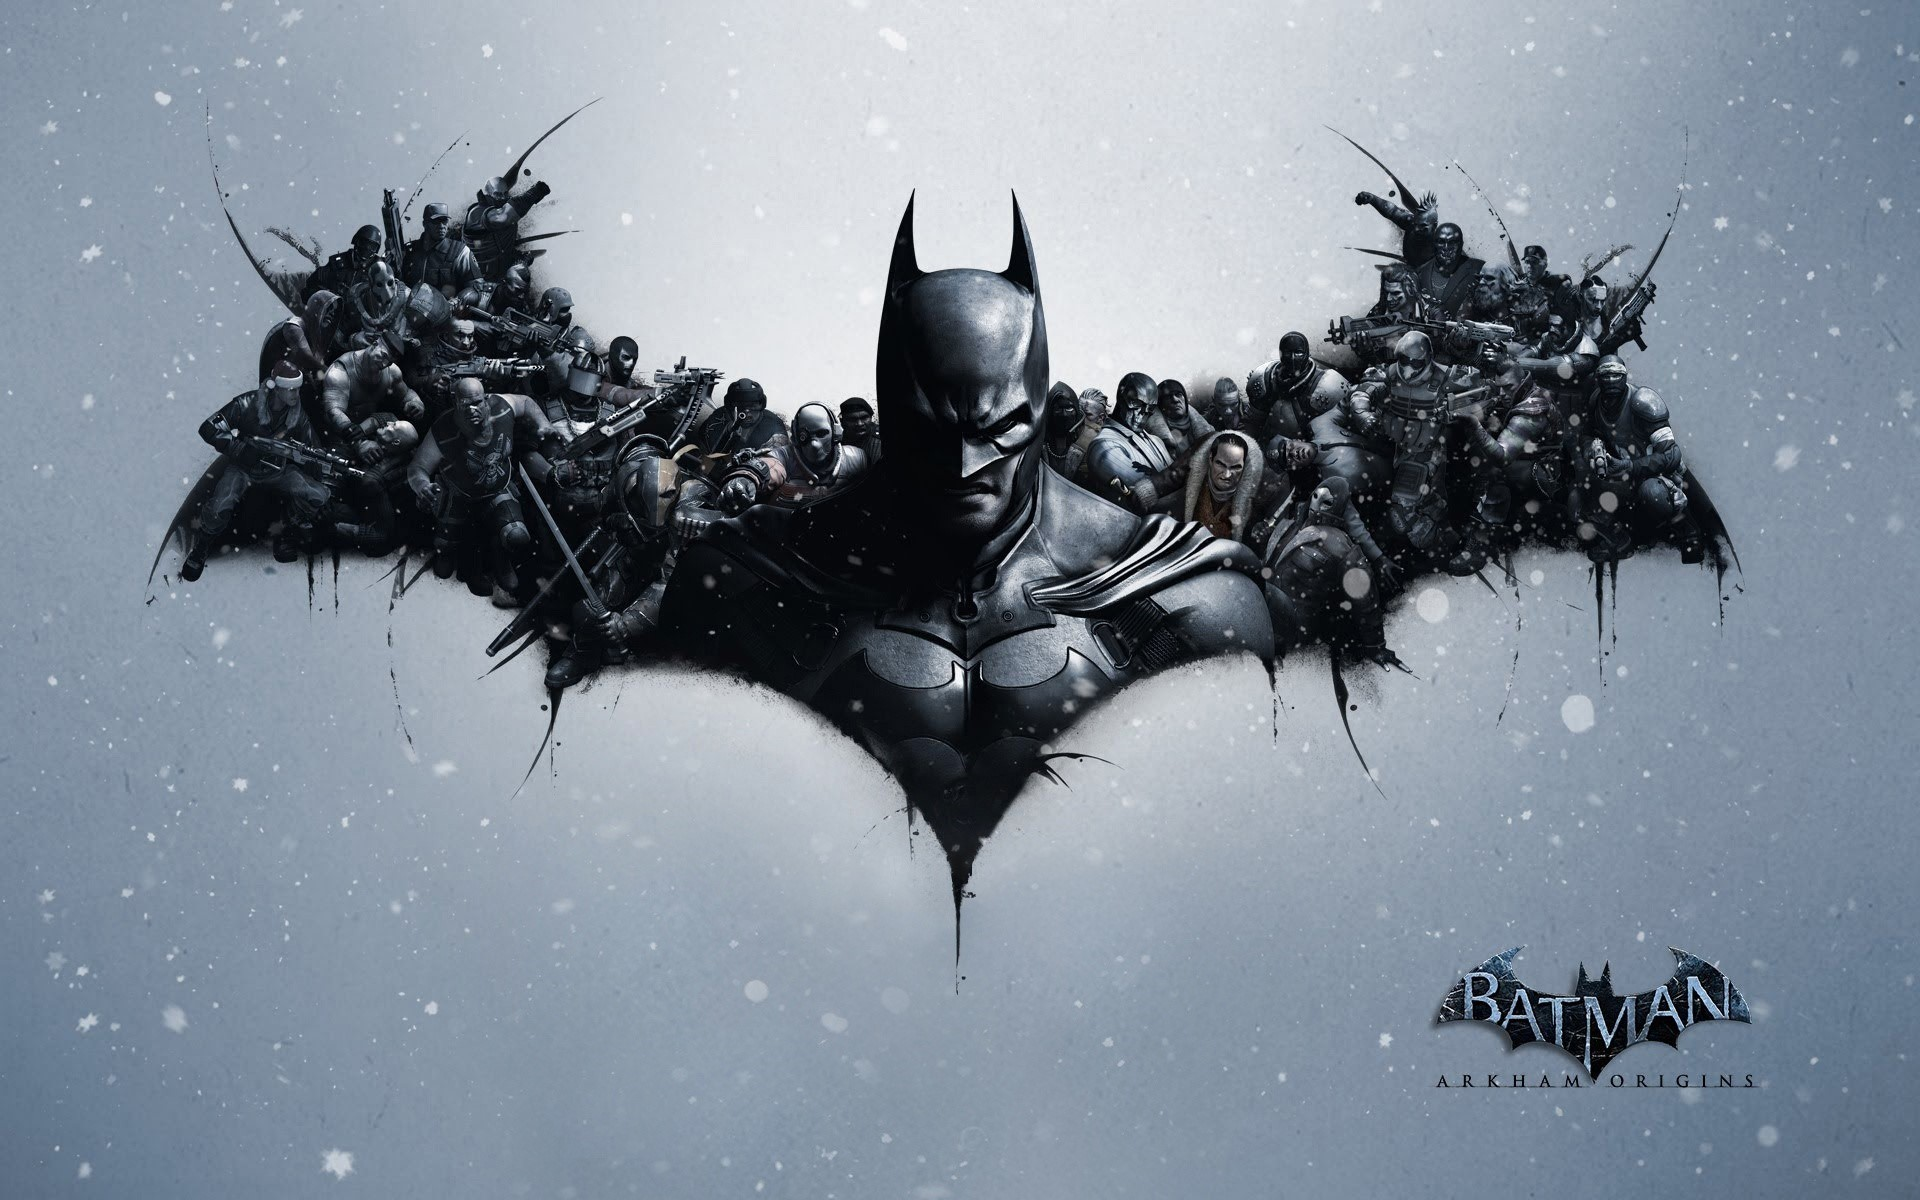 Wallpaper Video game Batman Arkham origins